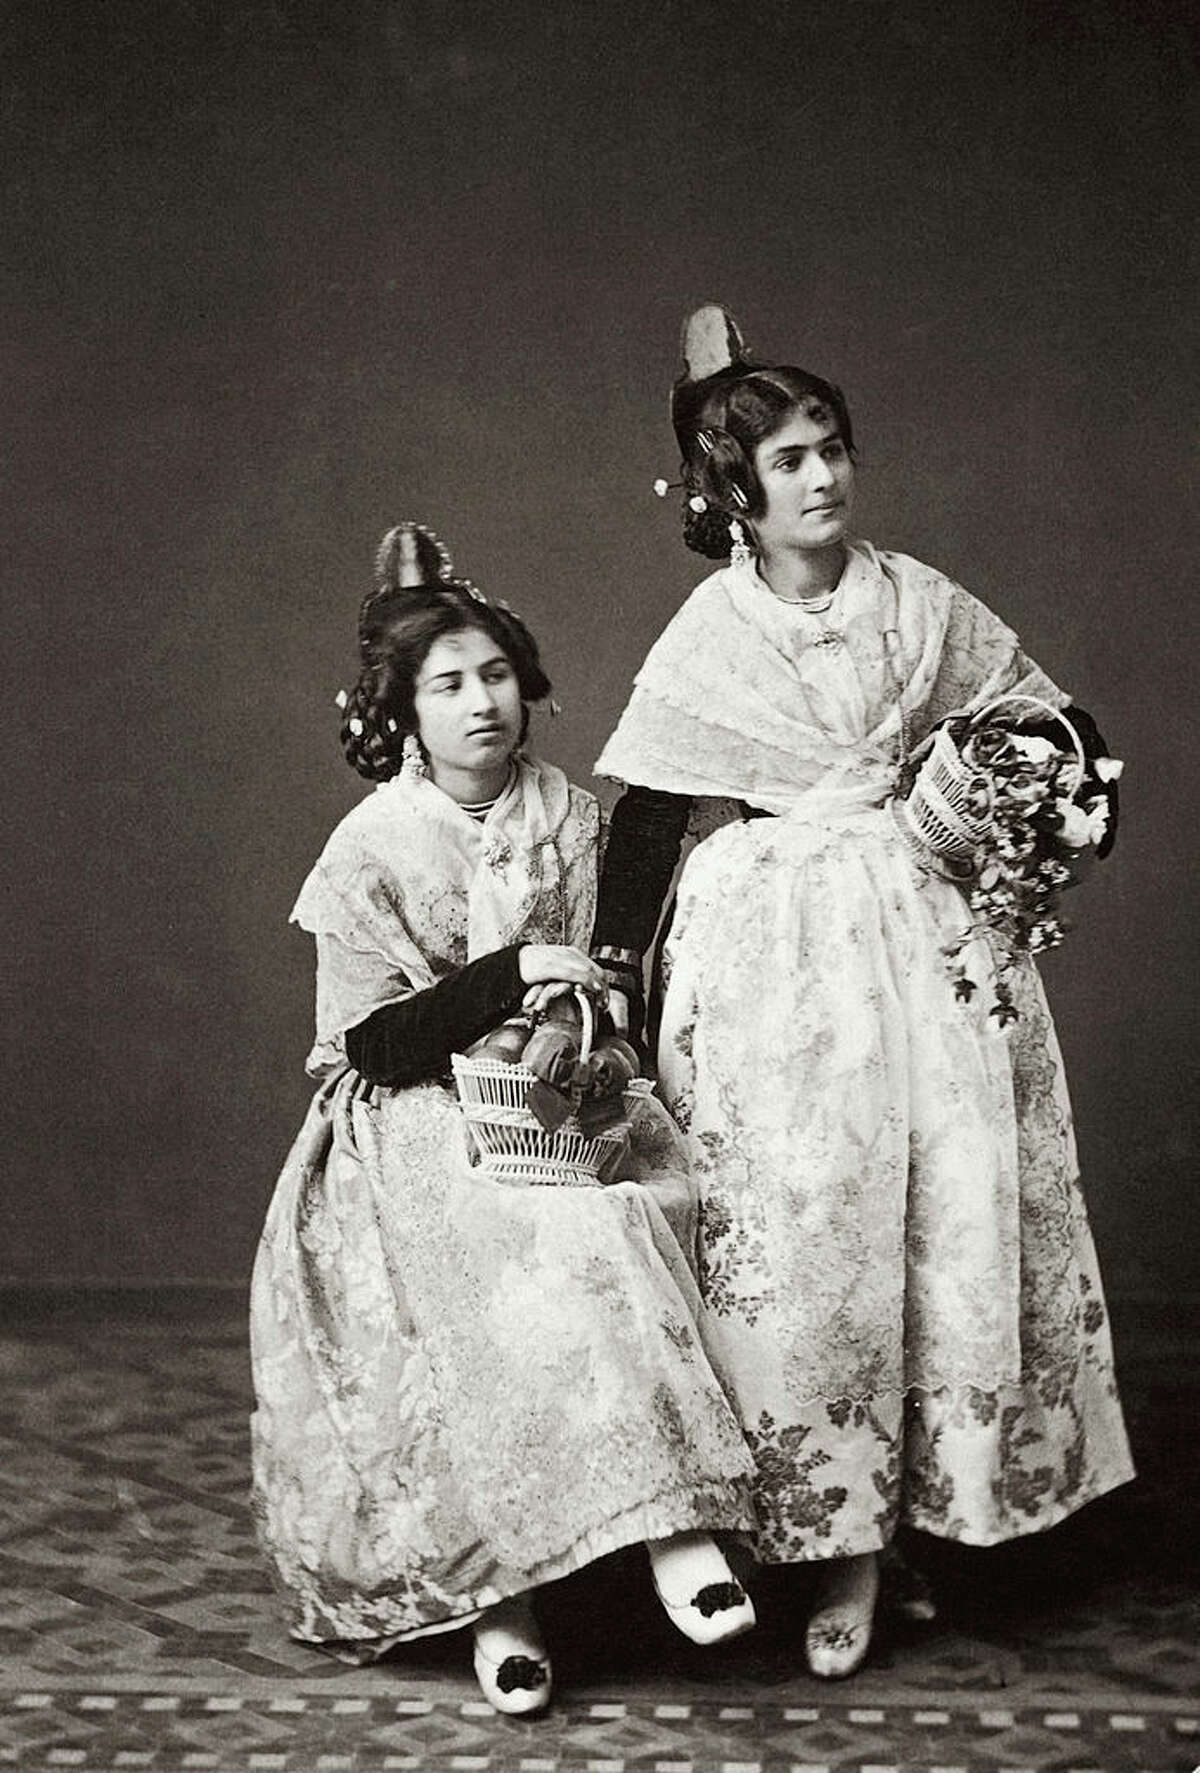 1800s Two Spanish women in traditional clothing, circa 1890.